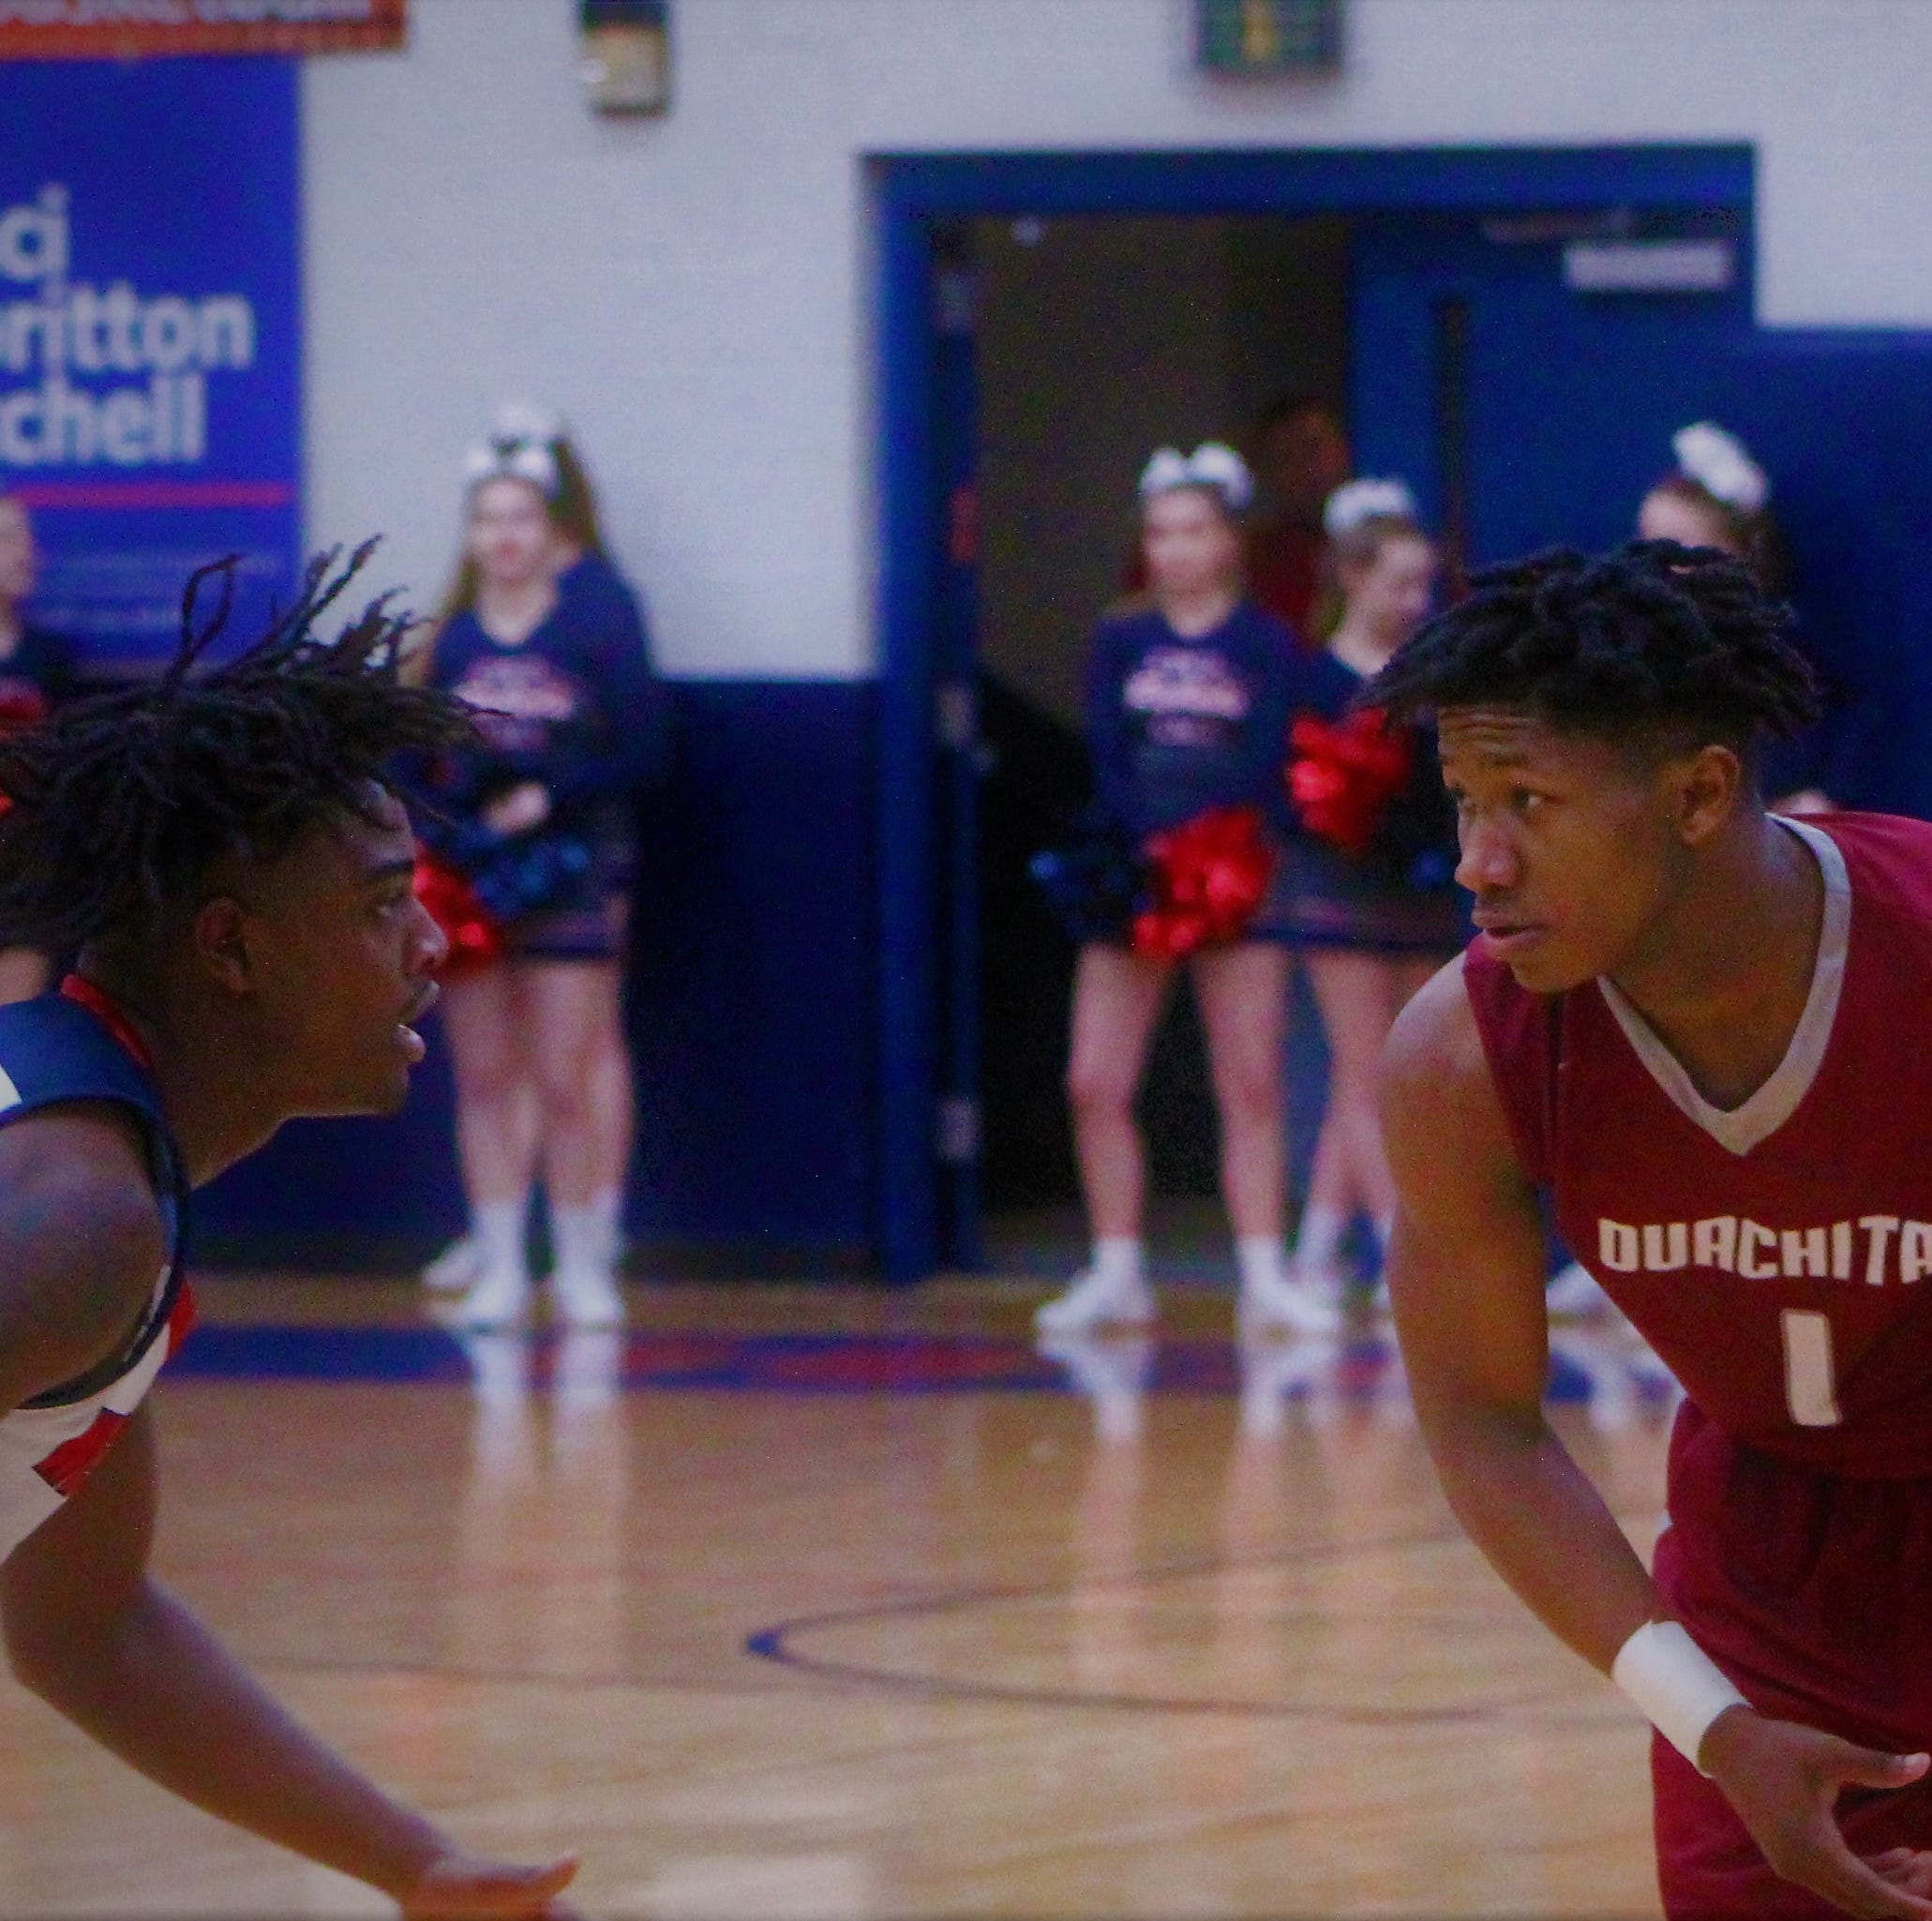 Ouachita Parish junior guard Quez Owens (1) looks to get past West Monroe junior Jerry Day, Jr. (4). Owens led the Lions in scoring with 17 points in Ouachita Parish's 66-33 victory over West Monroe in the District 2-5A opener for both squads at West Monroe High School's New Gym on Tuesday.